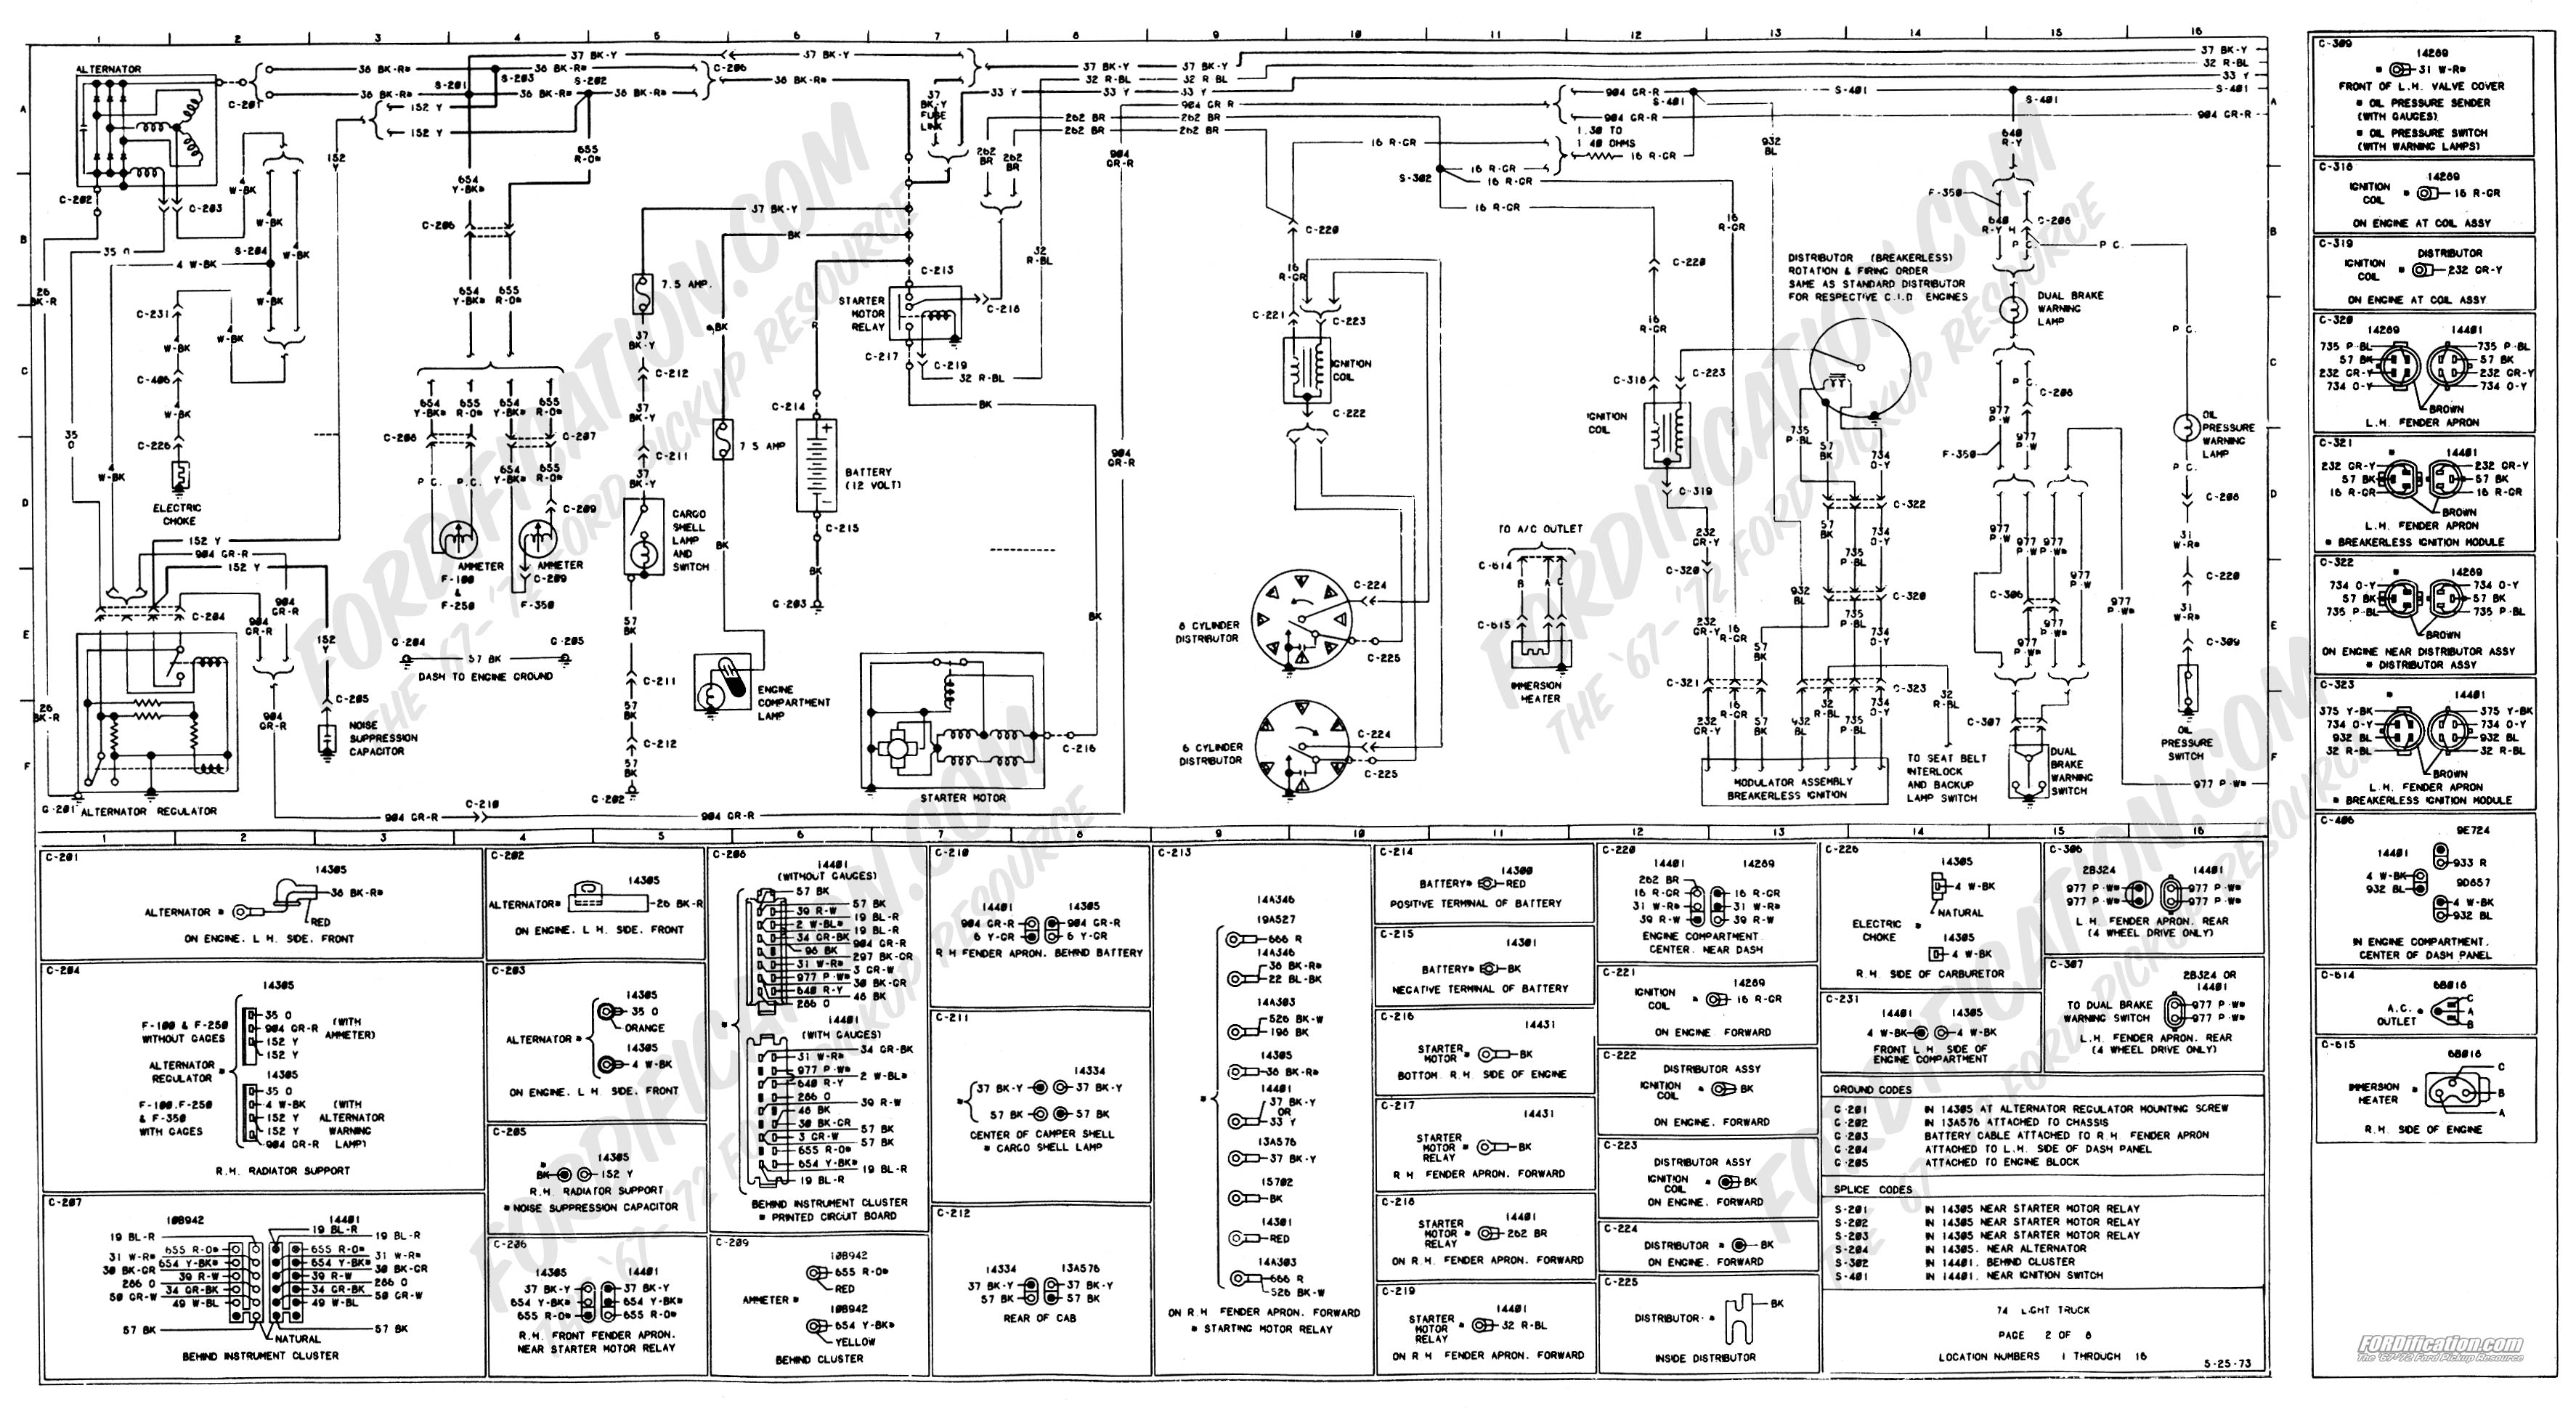 1976 F250 Fuse Panel Diagram Owners Mamuel Wiring For You Mazda Premacy Box 1973 1979 Ford Truck Diagrams Schematics Fordification Net